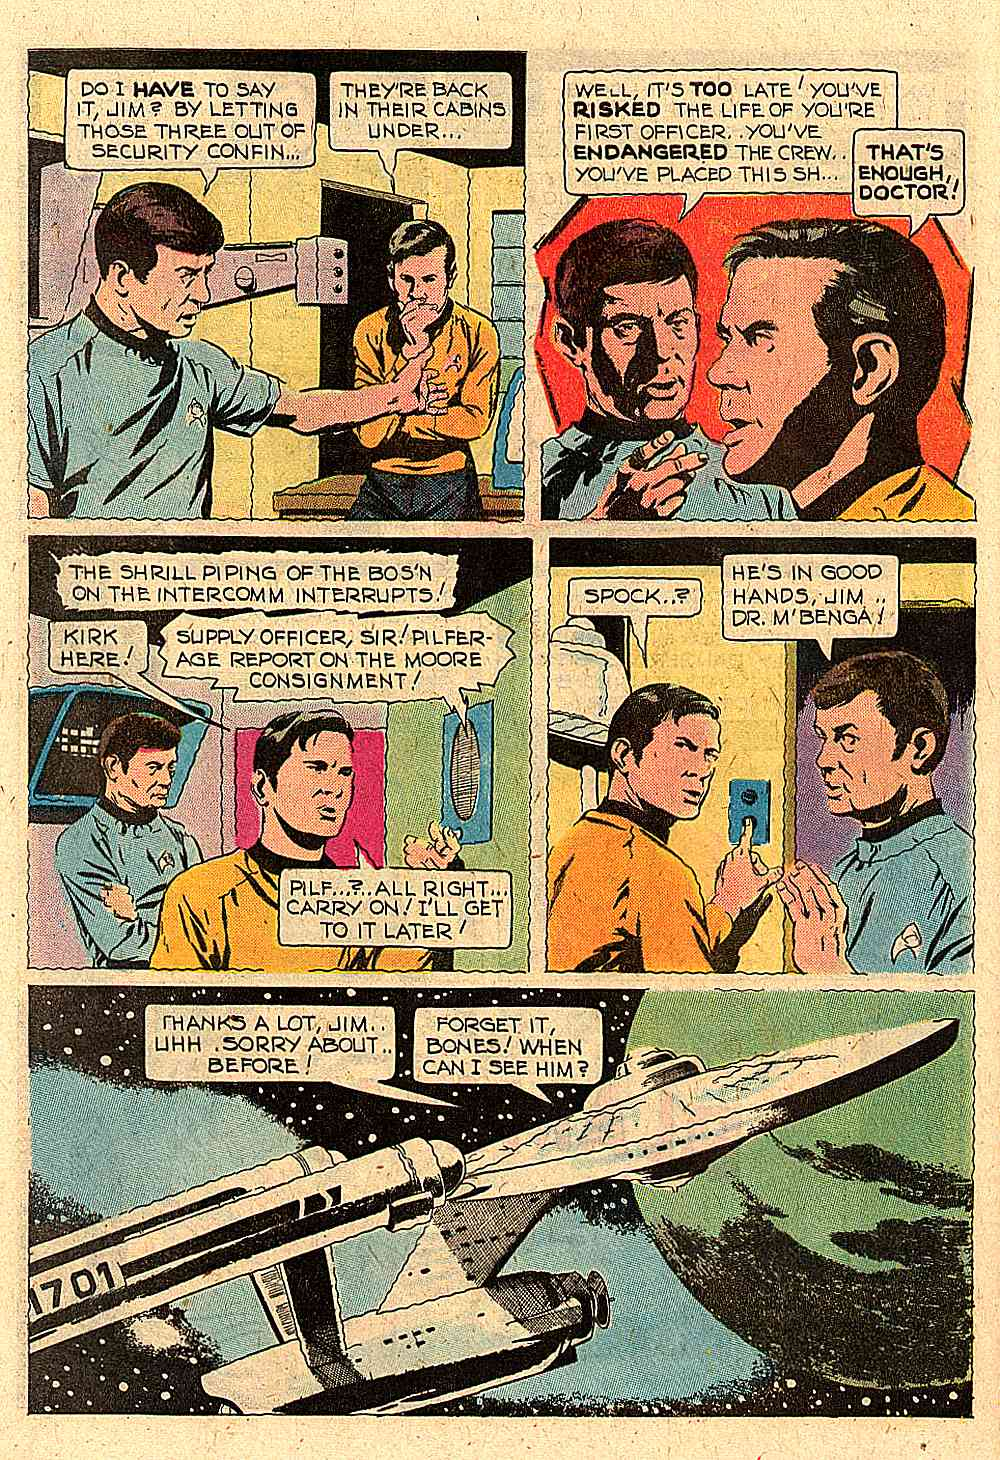 Star Trek (1967) #48 #48 - English 20